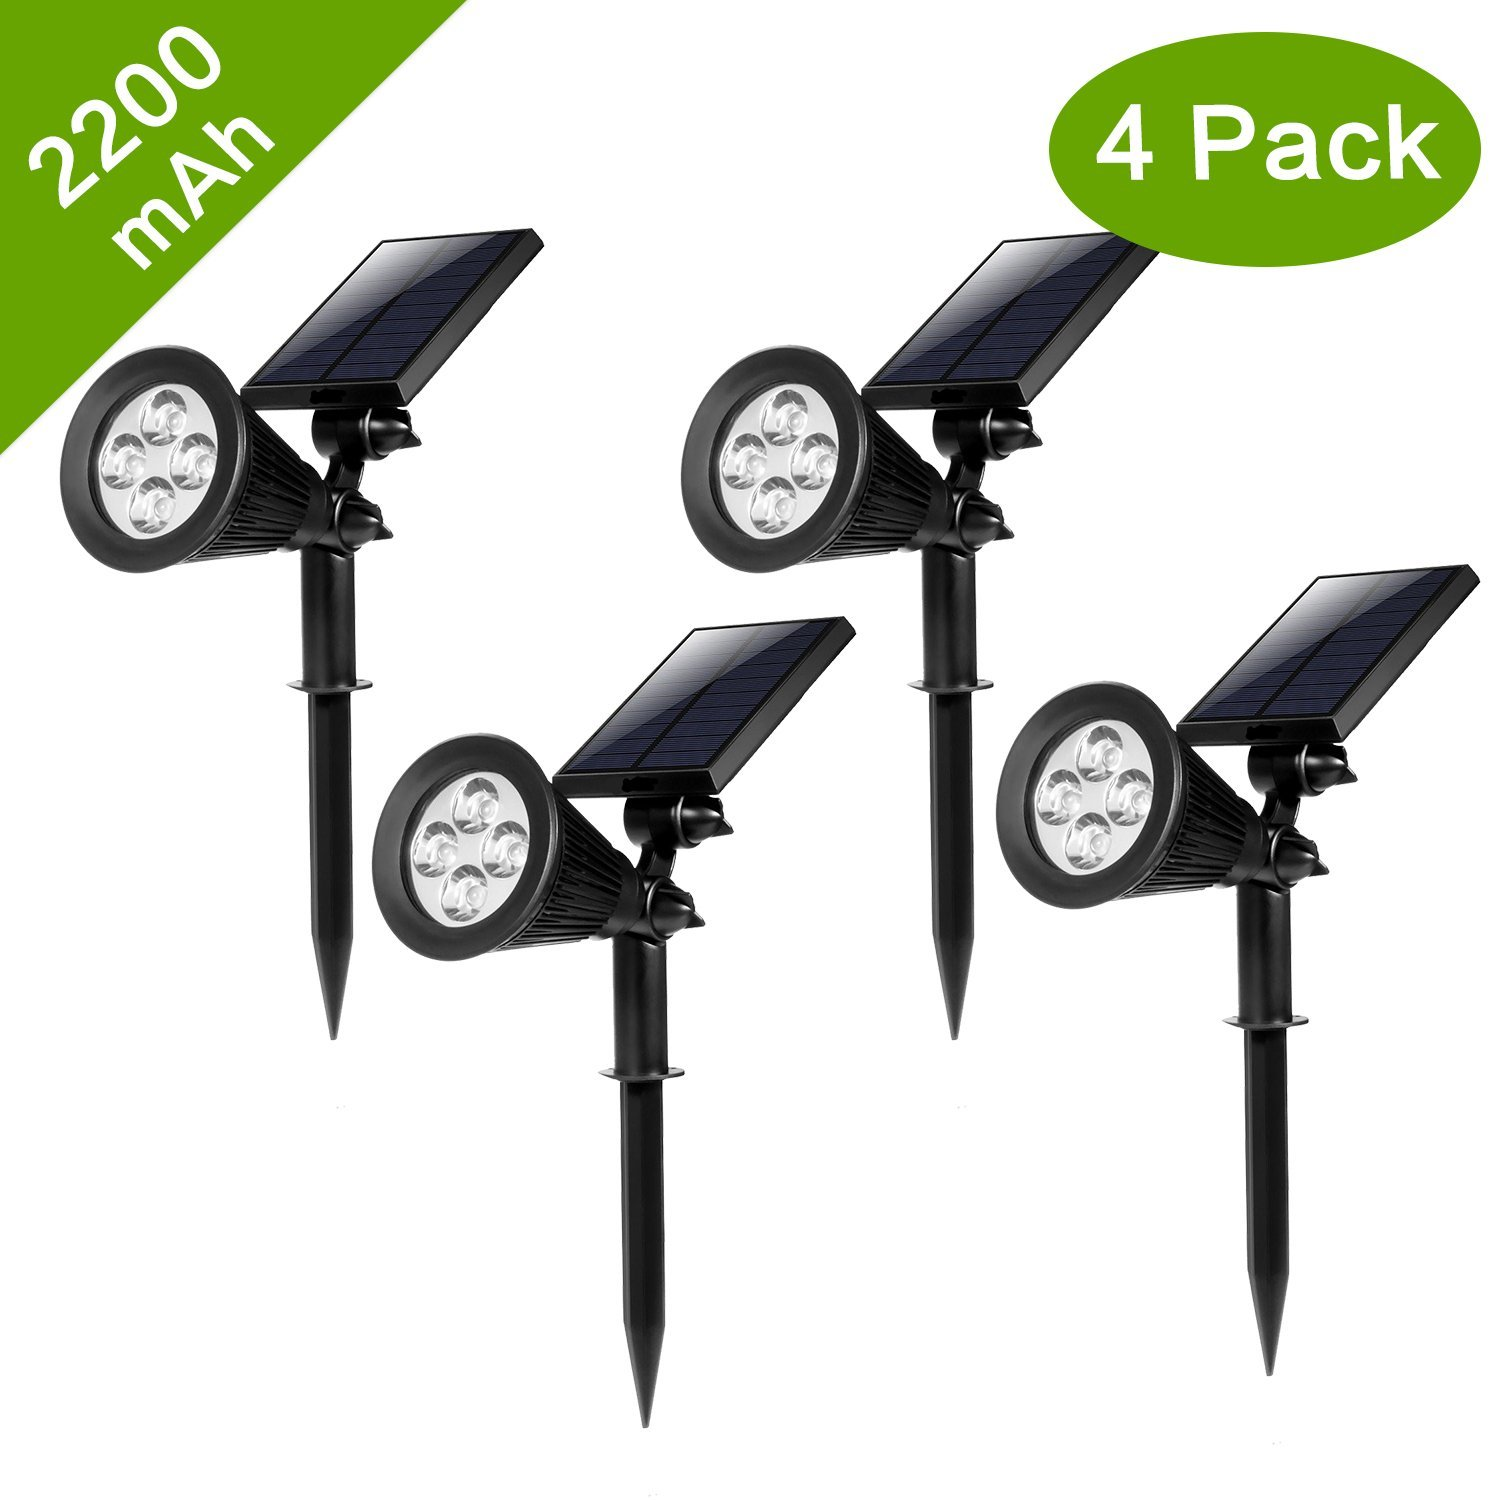 HKYH Bright Outdoor LED Solar Spotlight, Solar Powered Waterproof Outdoor Light Landscape, Garden, Driveway, Pathway, Yard, Lawn, Installs Easily, Security Lighting, Decorative, Pool Area, Etc.